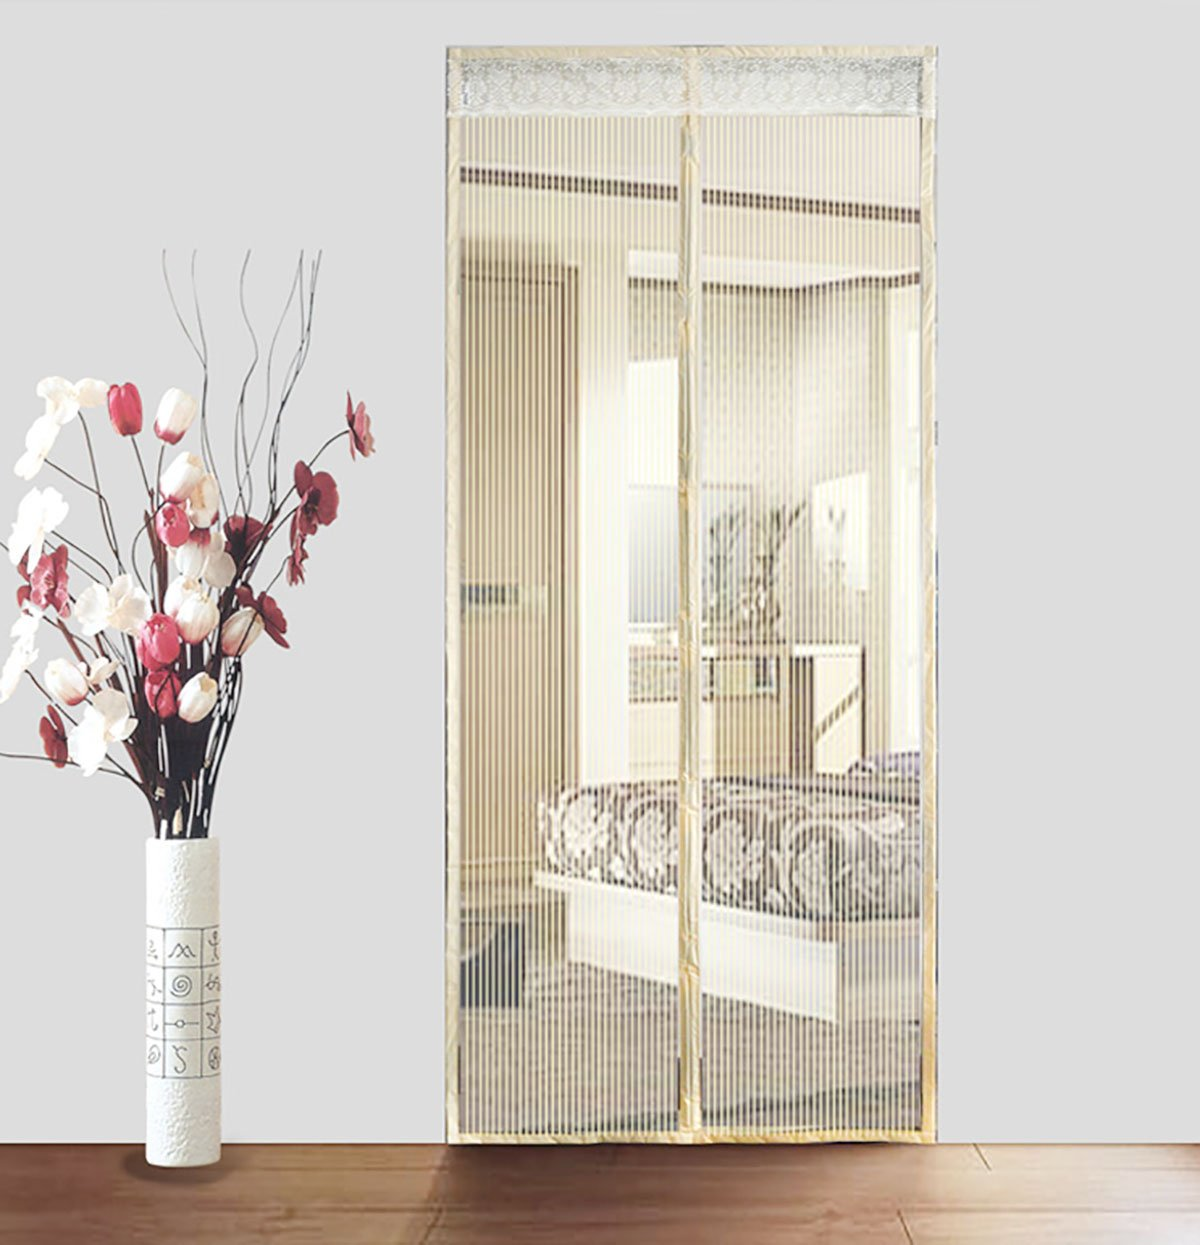 Q&F Magnetic Screen Door With Heavy Duty,Mesh Curtains,For Sliding Doors,Garage,Fishing Boat-super Quiet,Hands Free-let Fresh Air In-Beige 95x210cm(37x83inch)